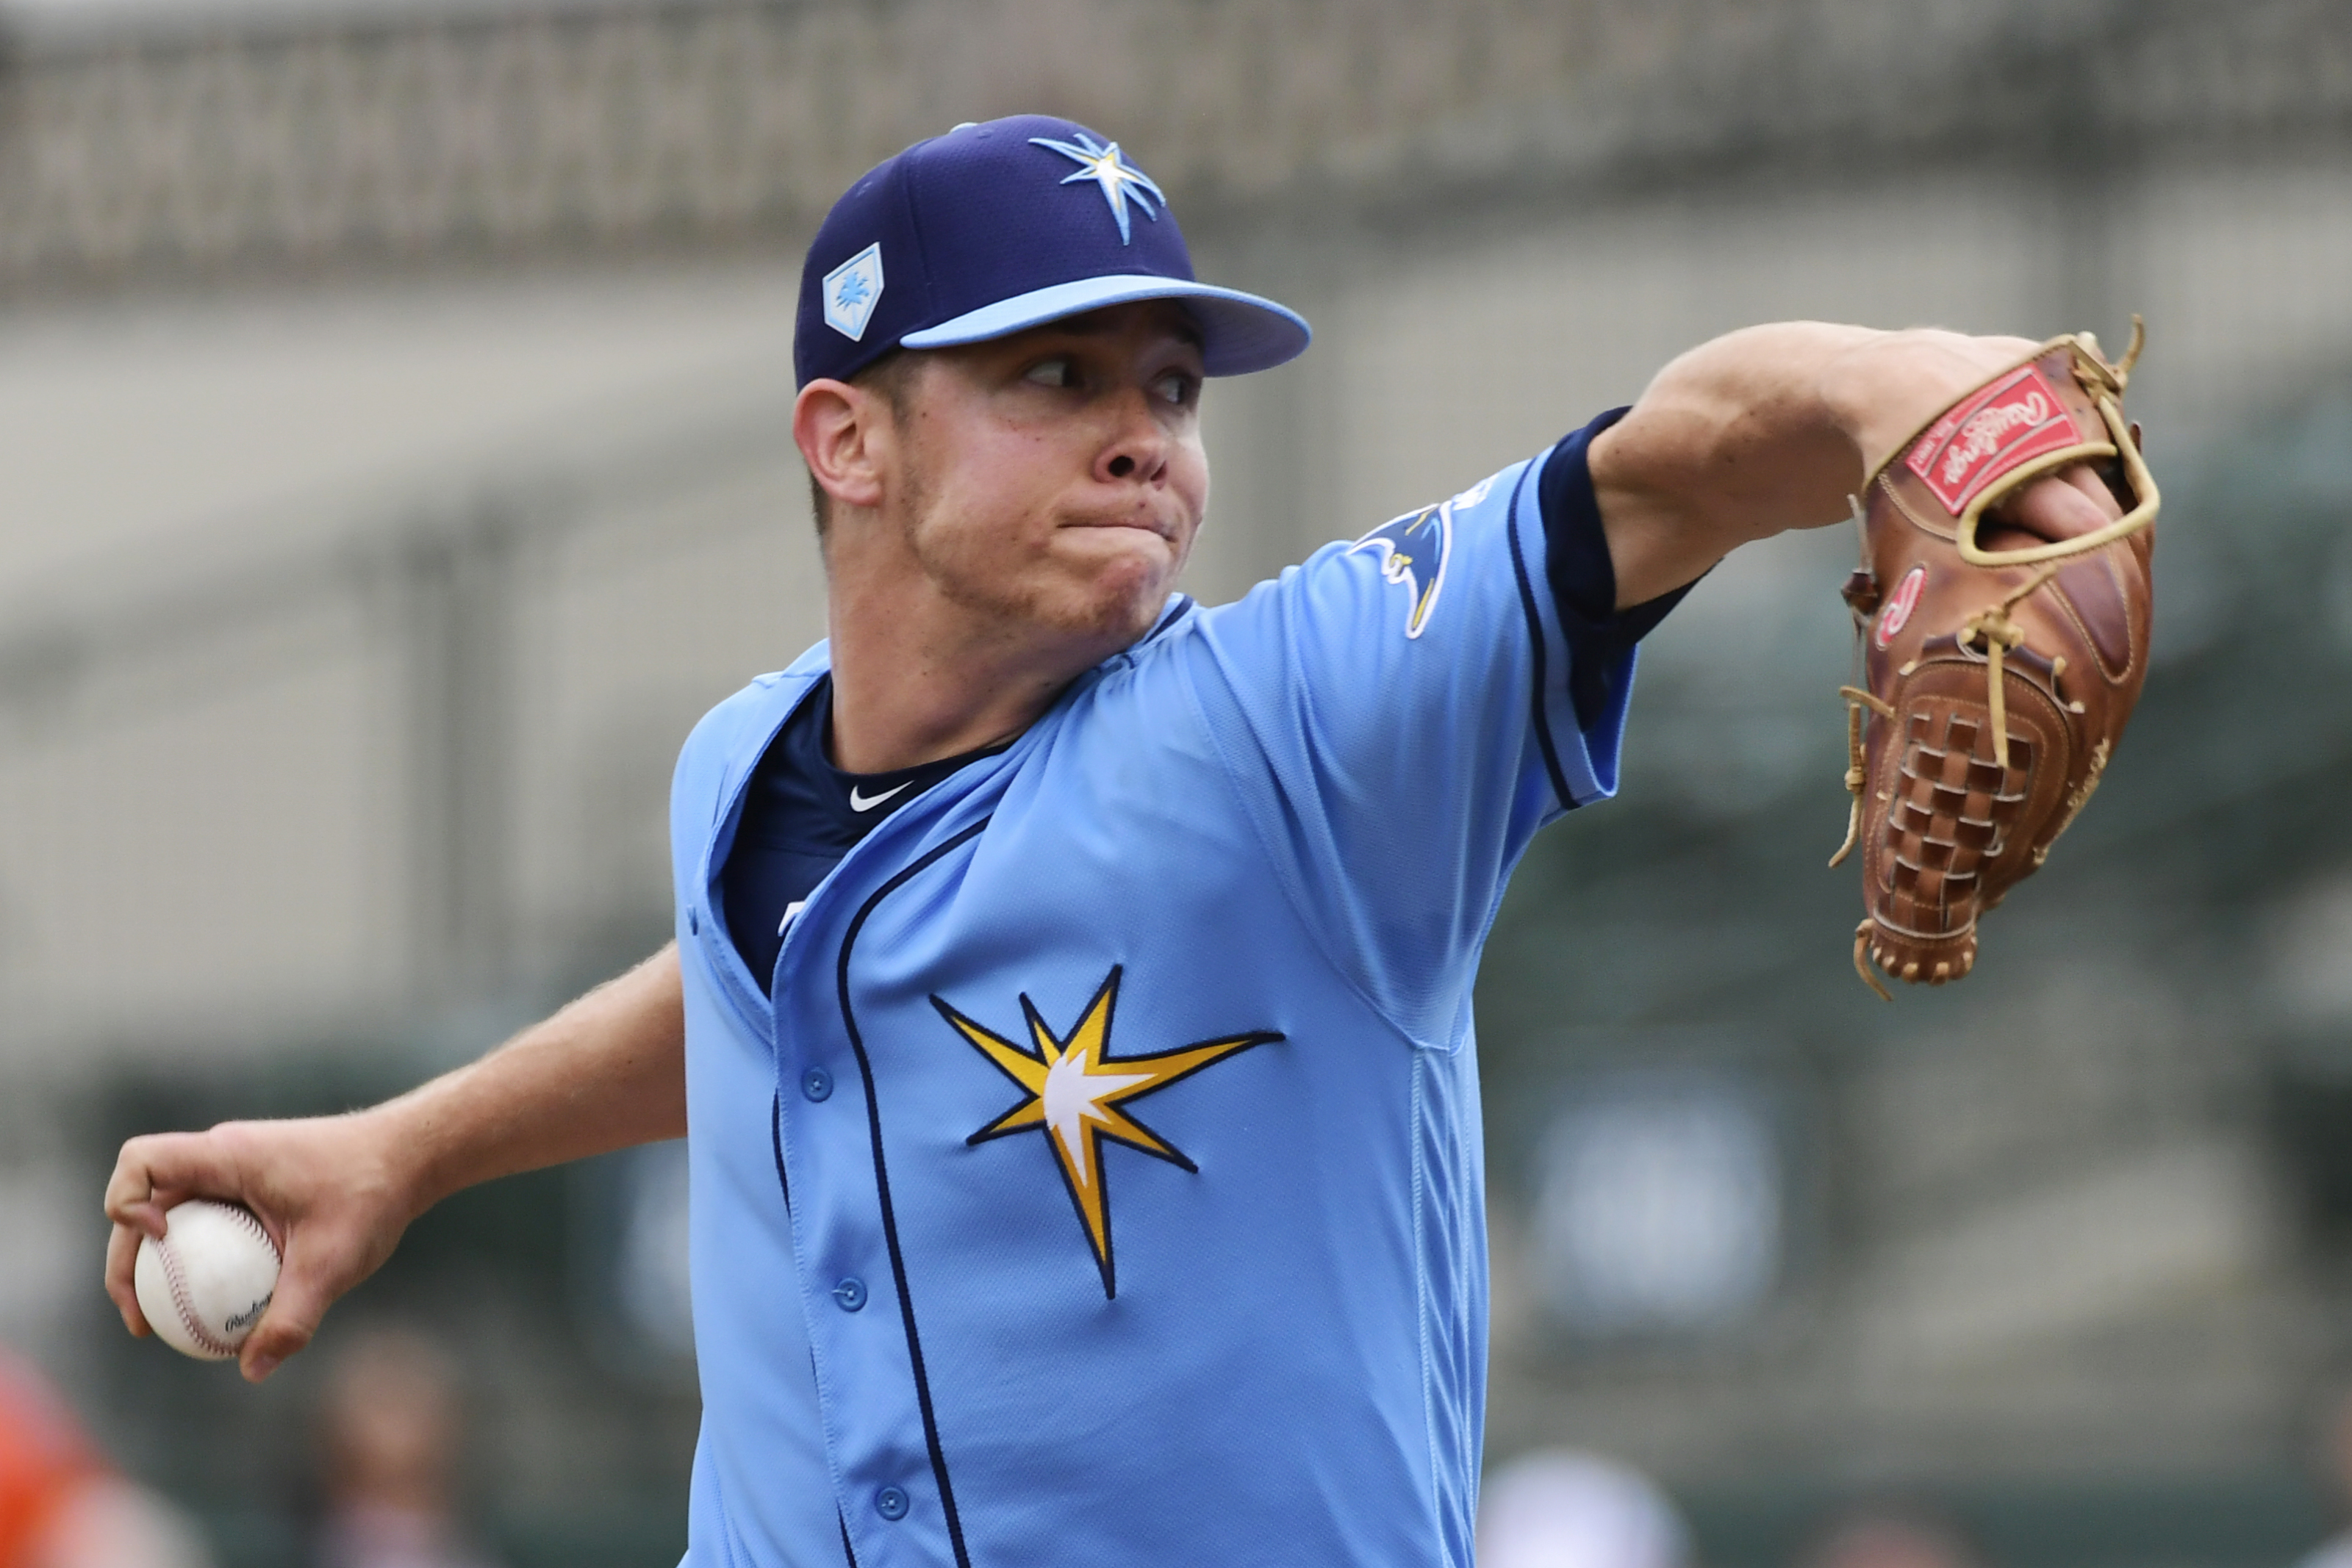 Tampa Bay Rays make a trade with Pads, hope Snell isn't live on Twitch